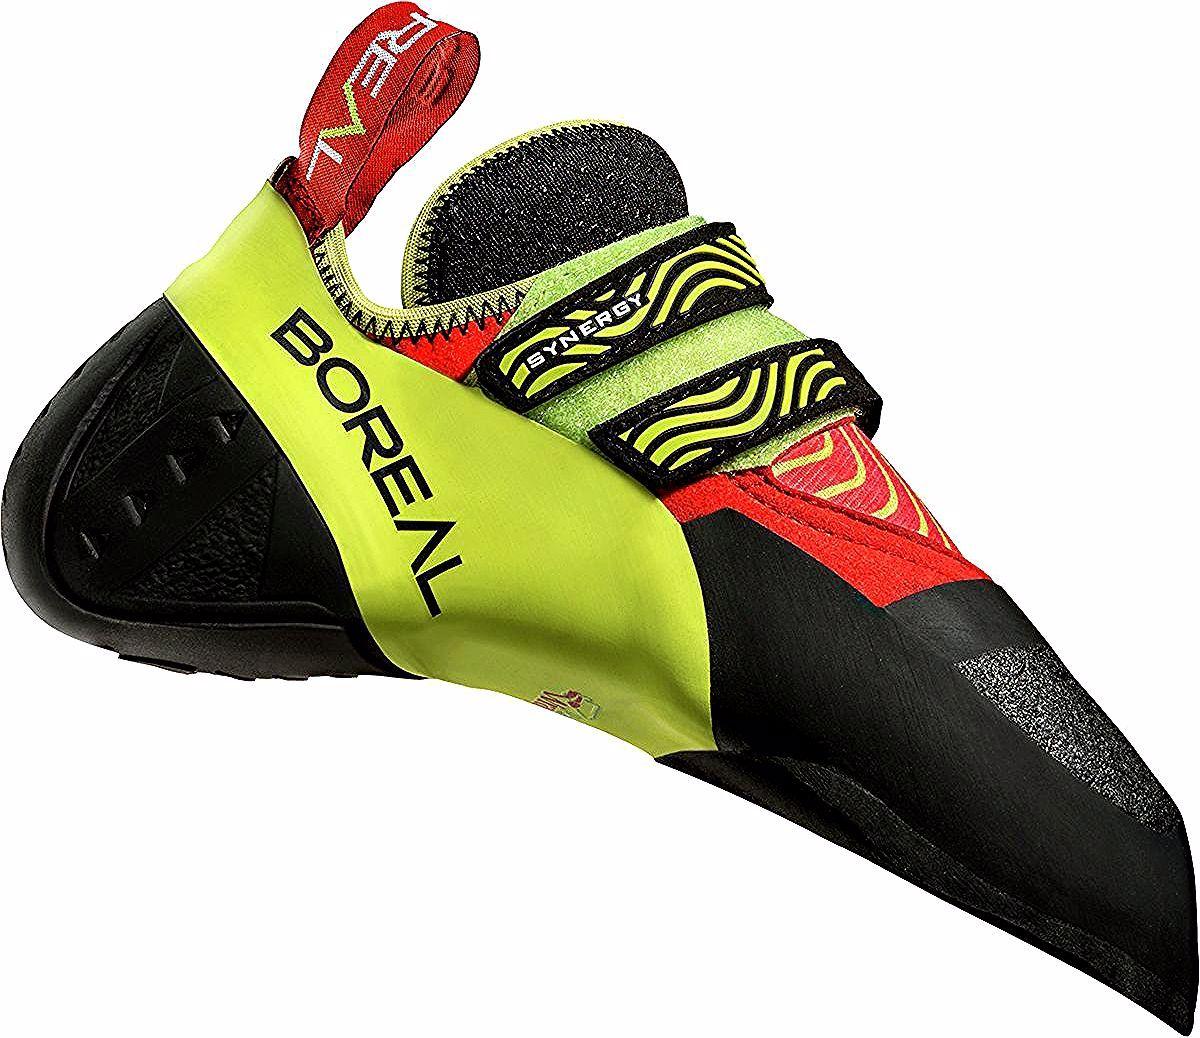 Boreal Synergy Climbing Shoe in 2020 | Bouldering shoes